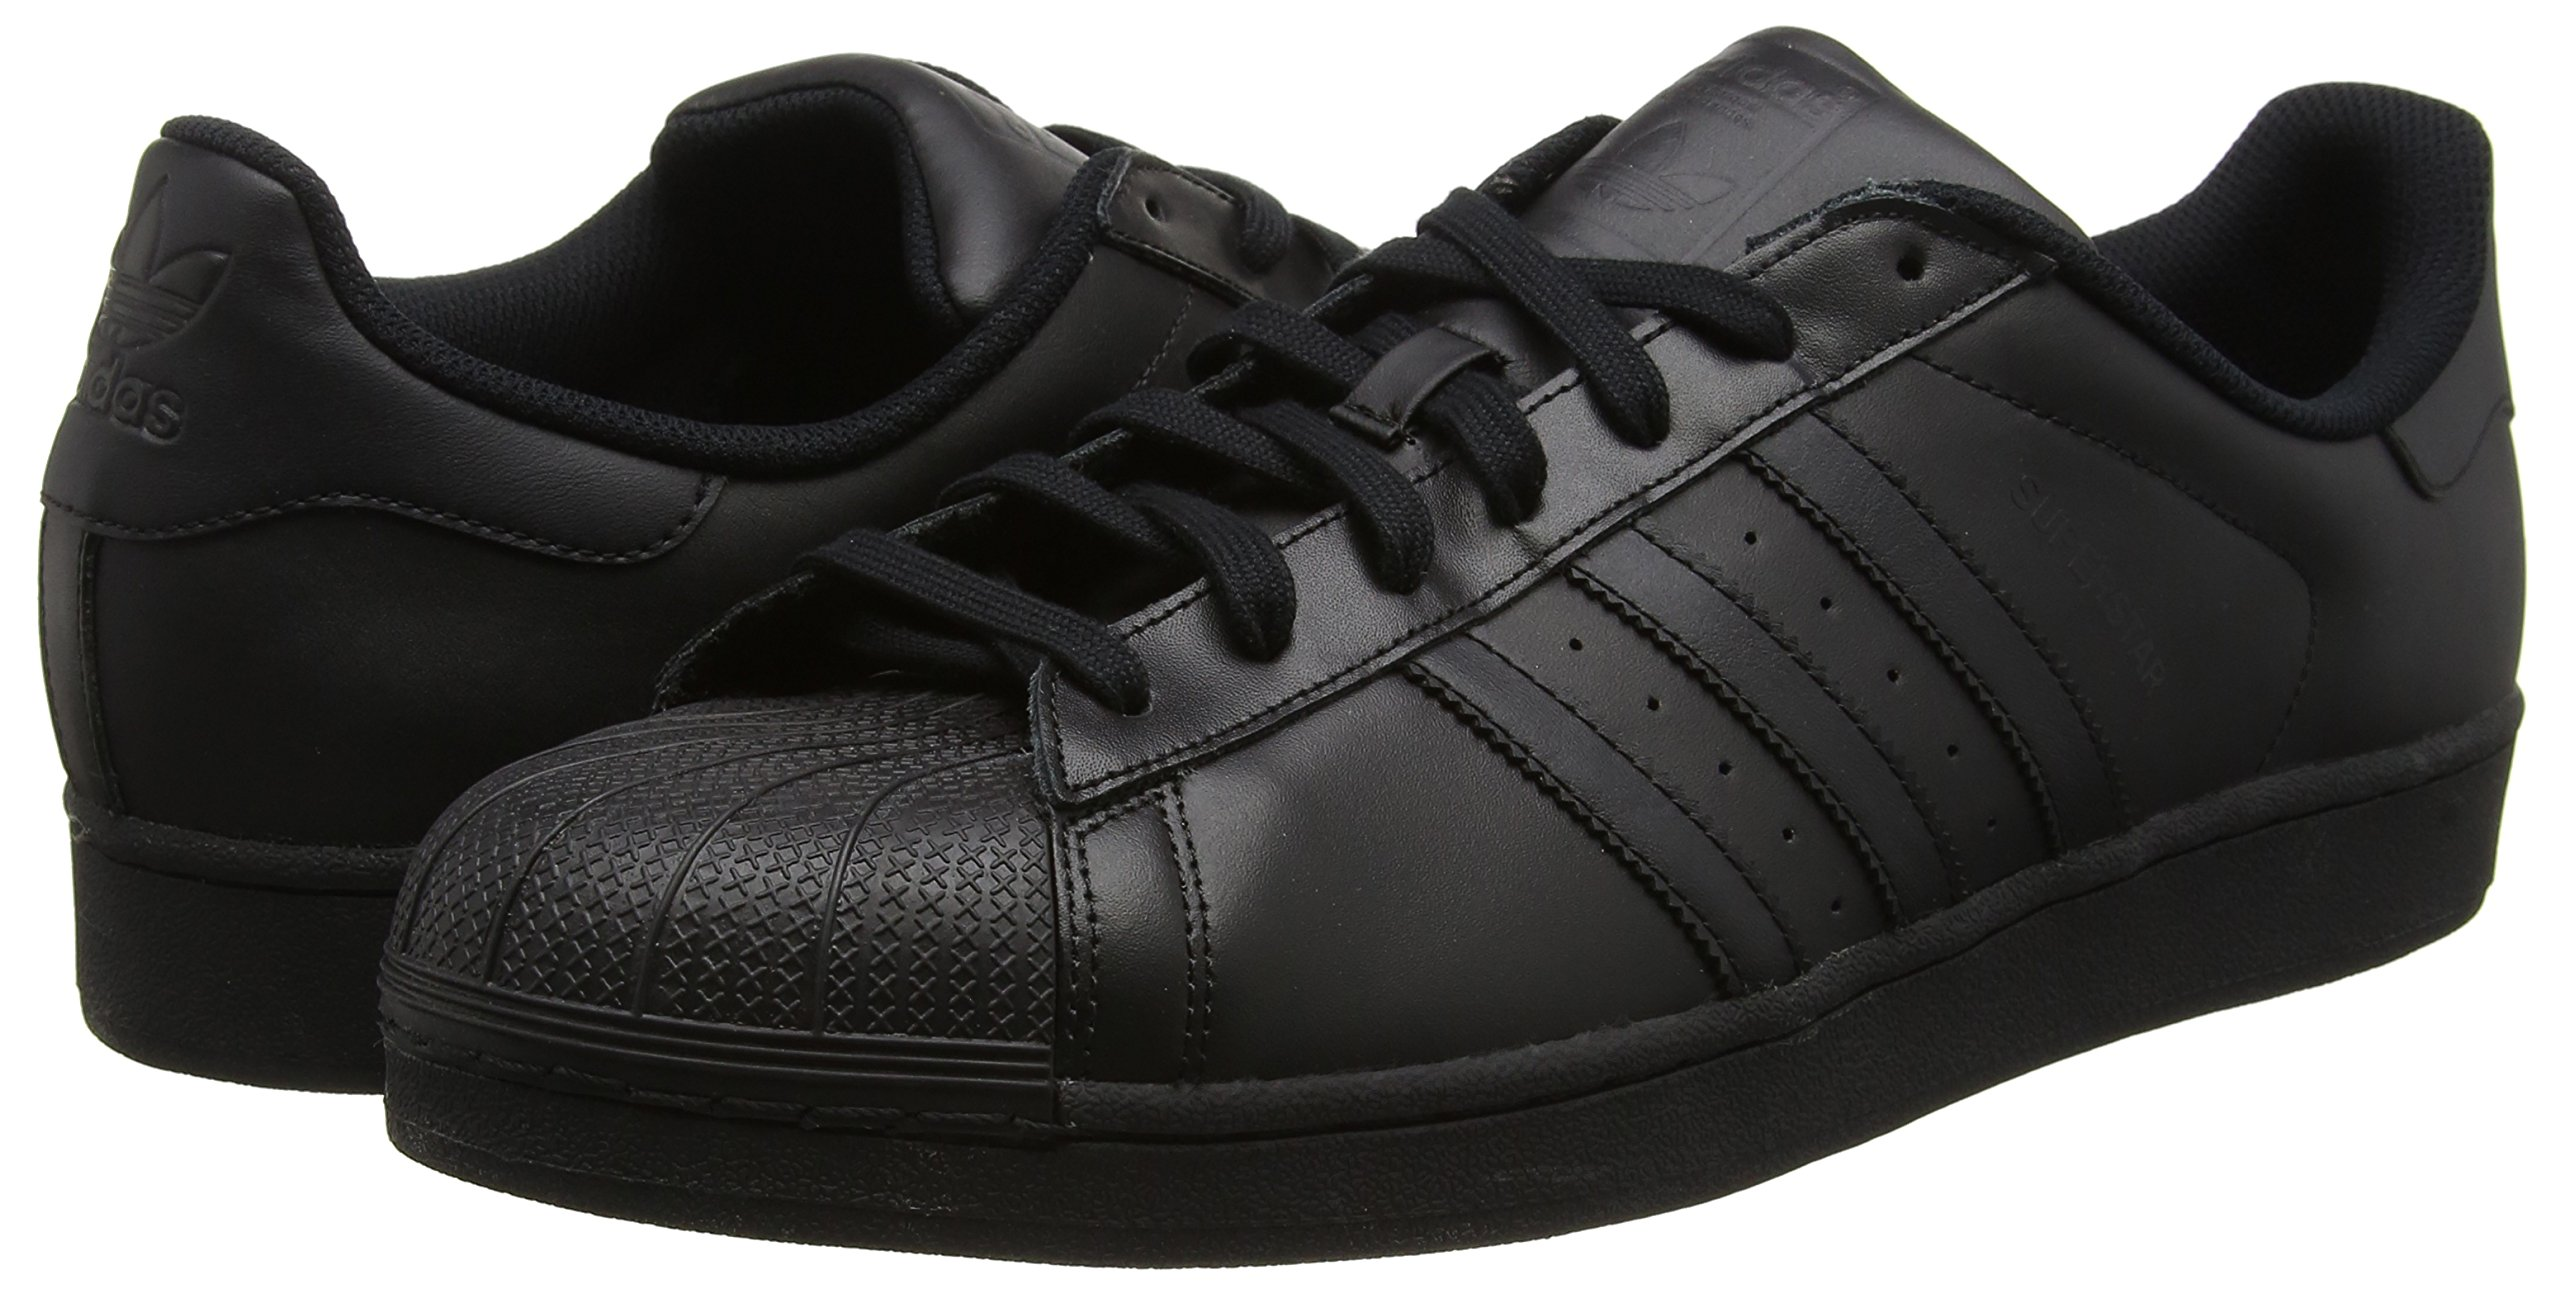 Adidas Originals Superstar Foundation Scarpe da Ginnastica Unisex - Adulto 5 spesavip